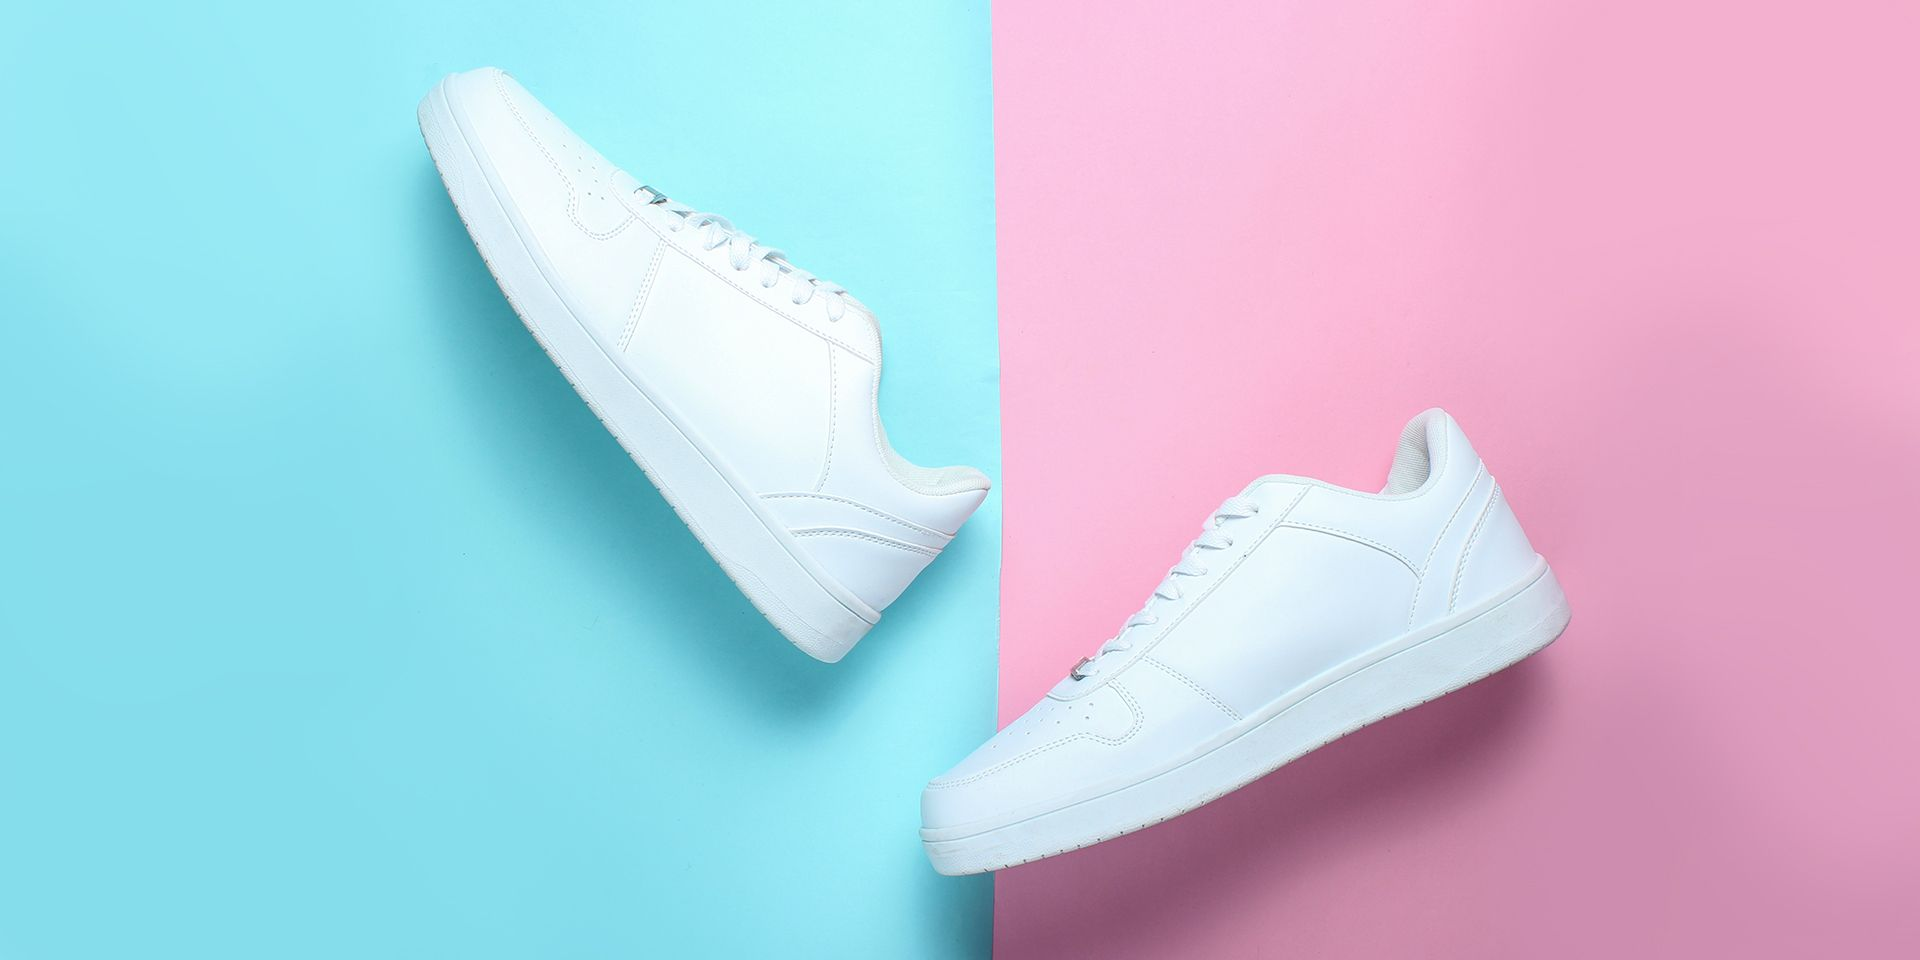 How to Clean Even the Dirtiest White Shoes